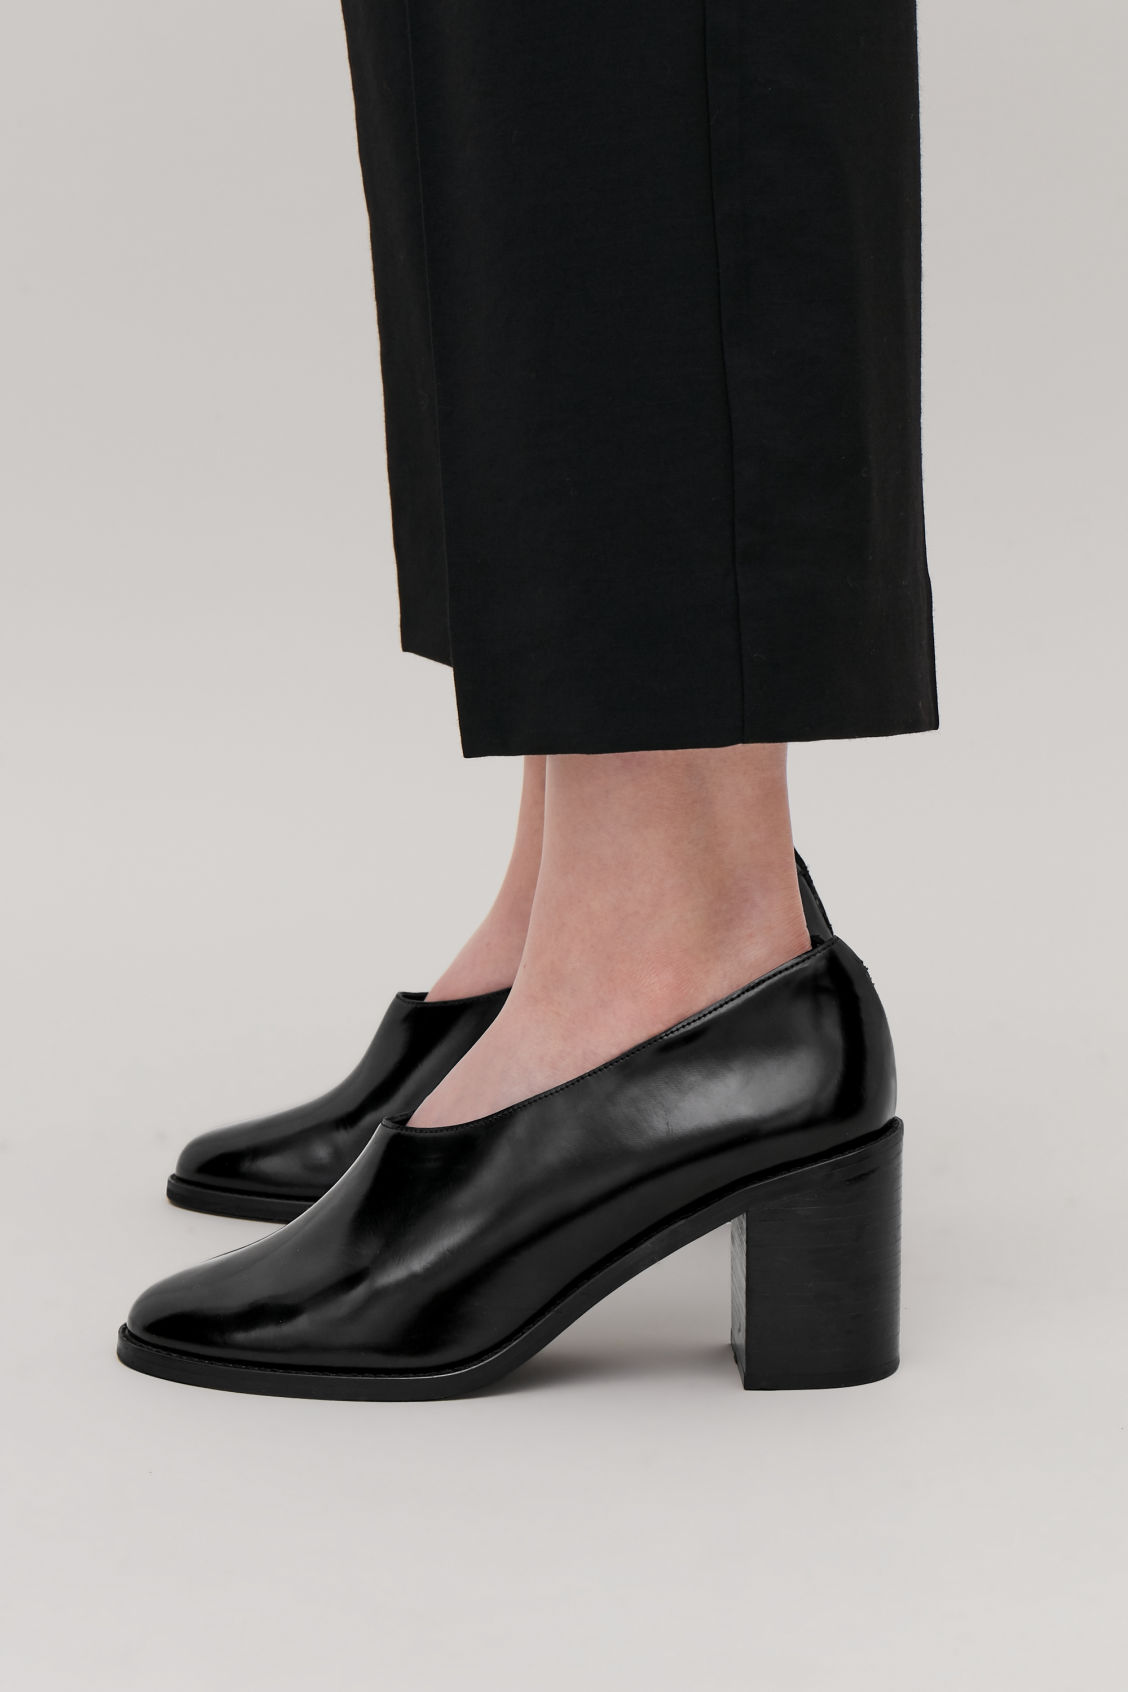 Detailed image of Cos chunky leather heels  in black